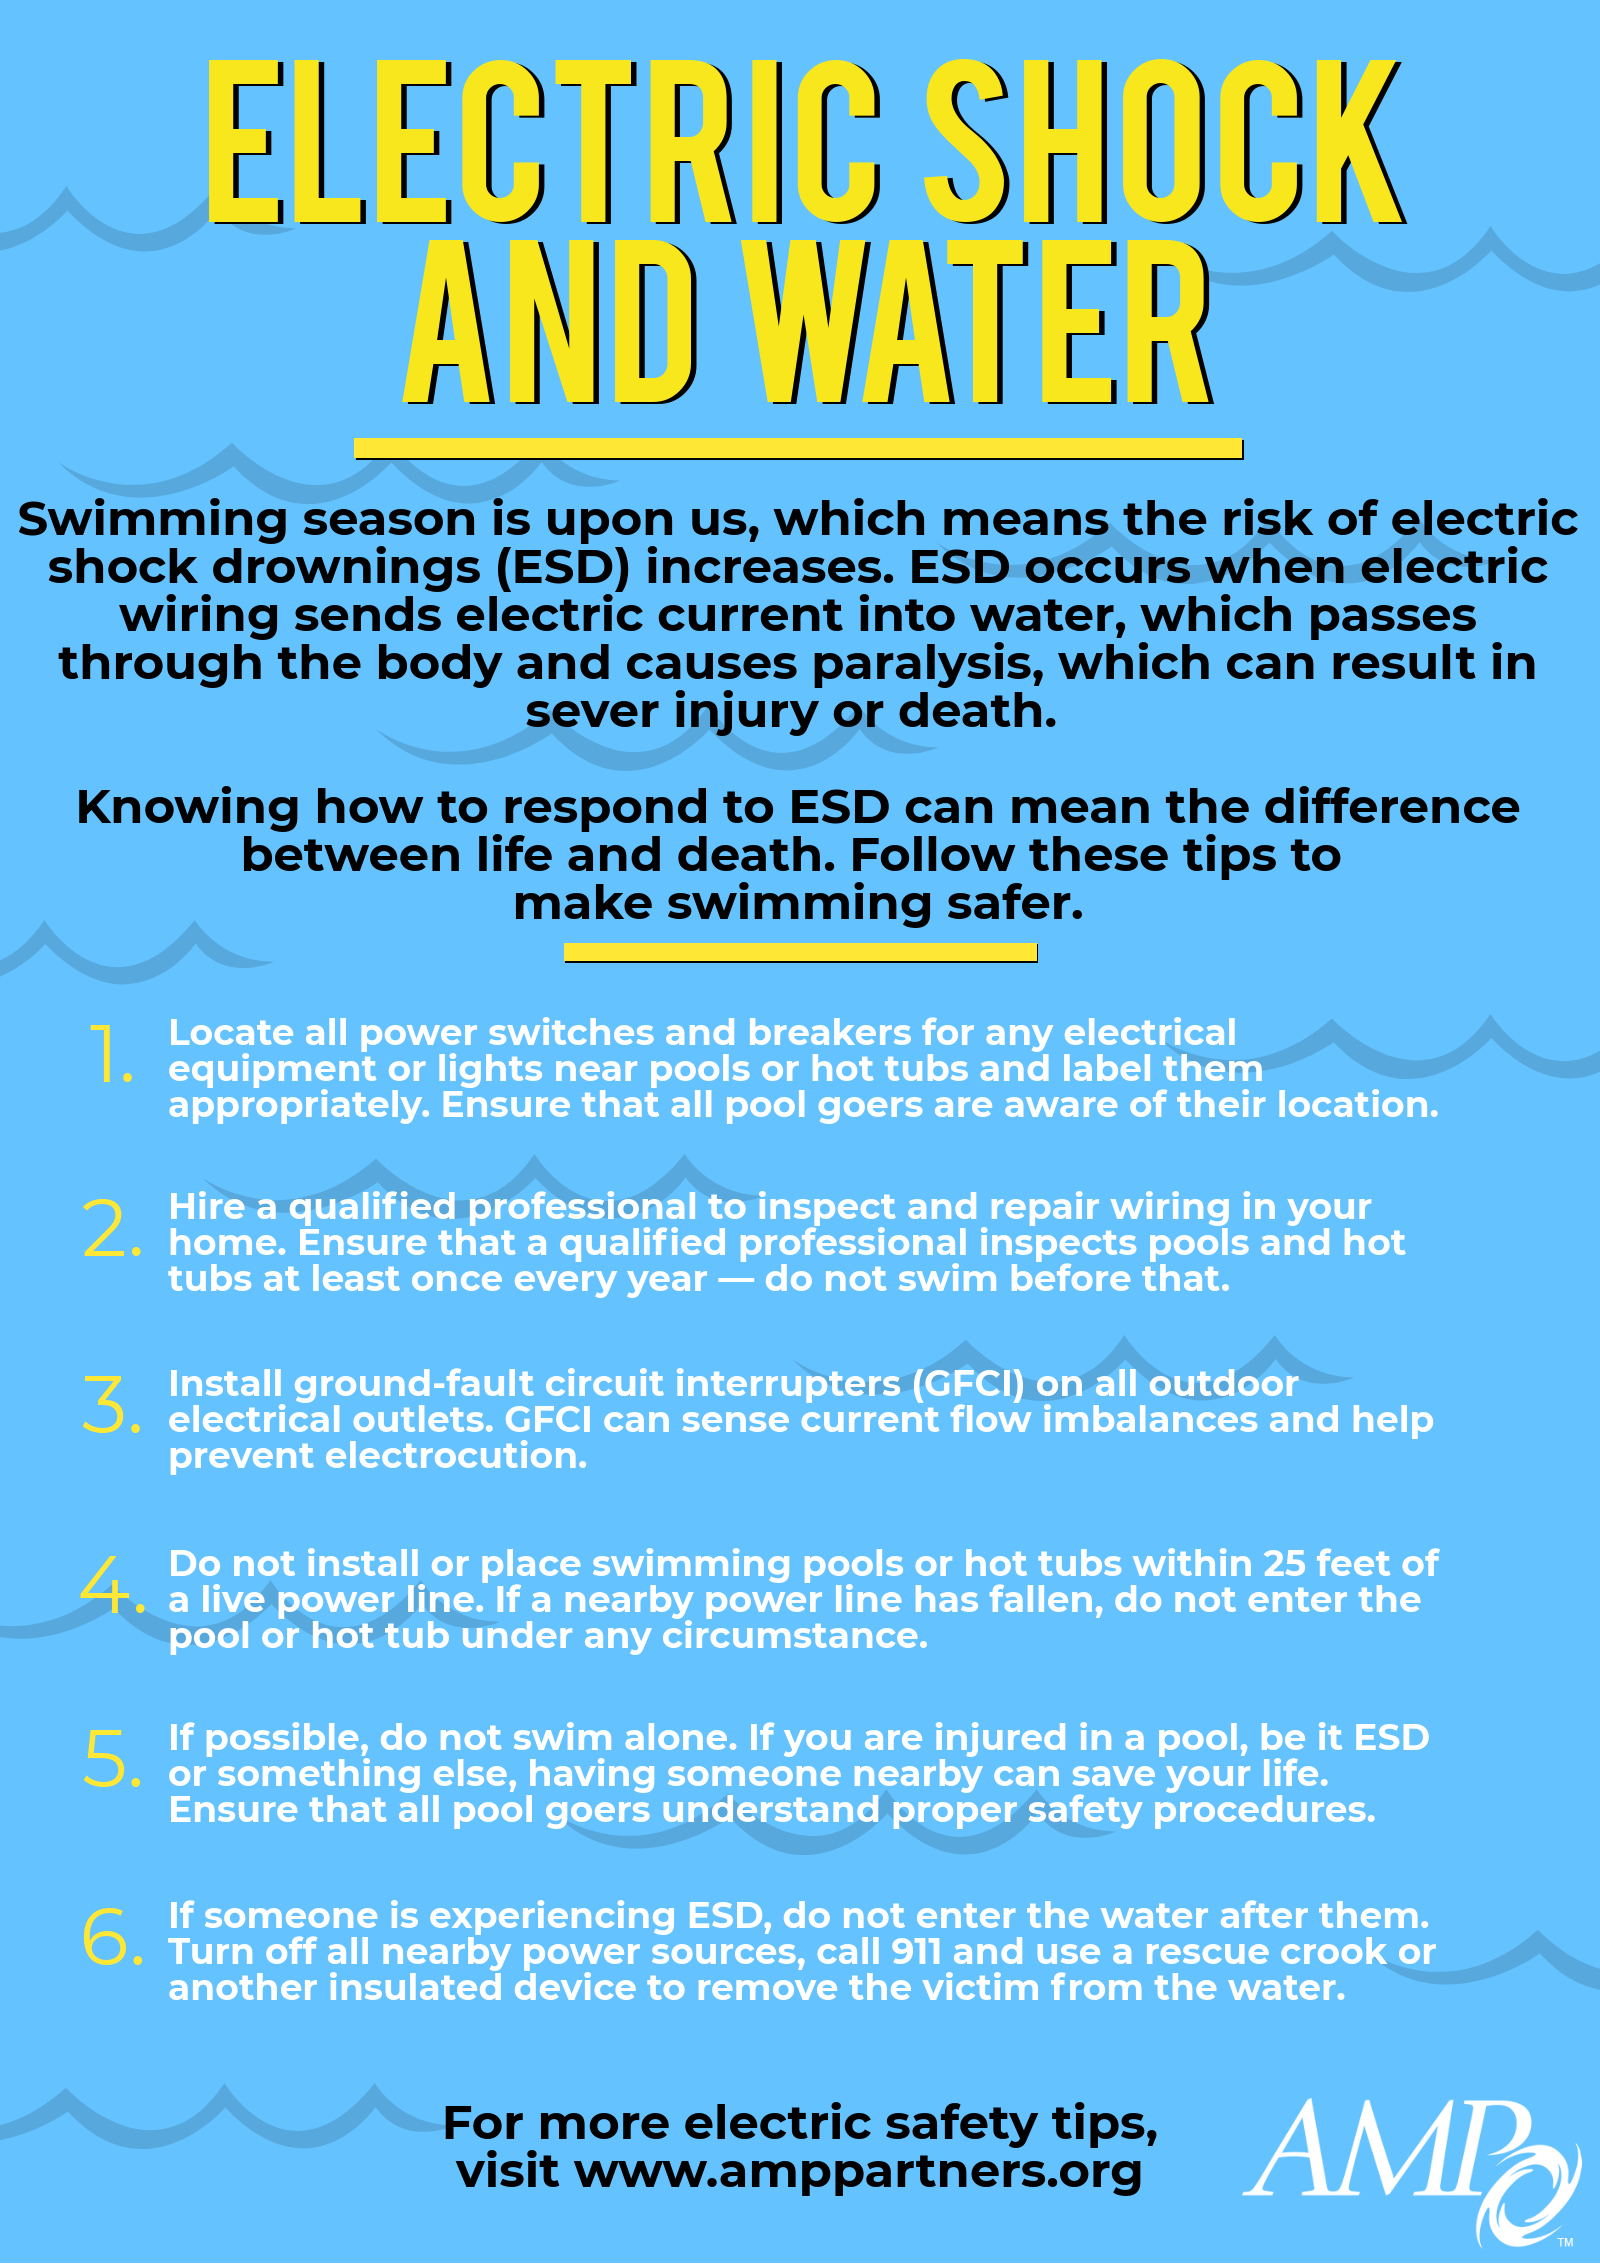 Amp Currents Wiring Hot Tub Shut Off Fact Sheets